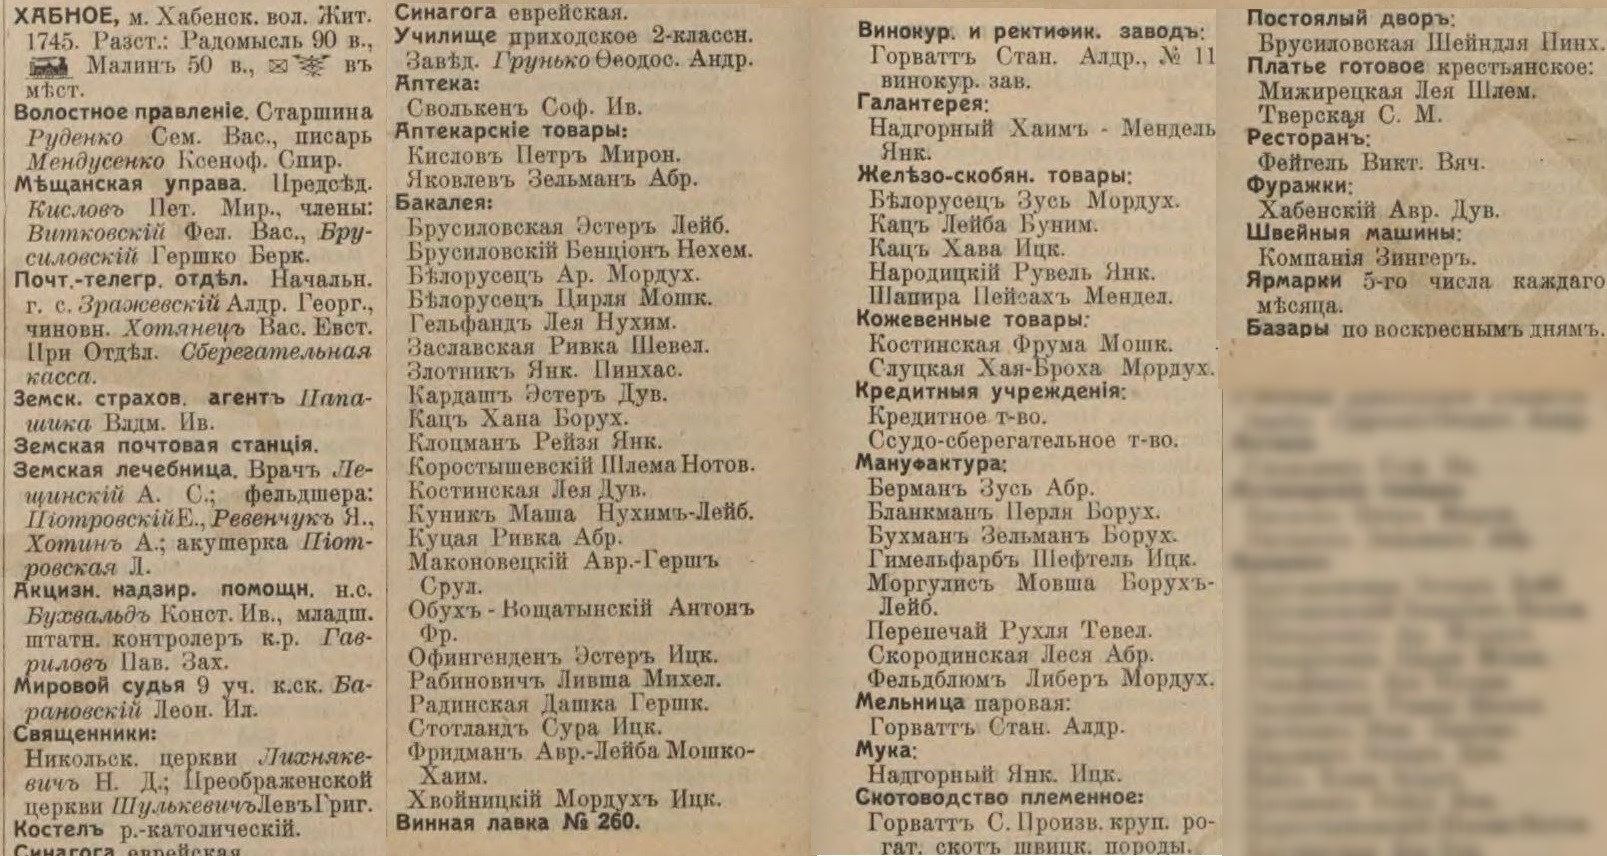 Khabno entrepreneurs list from Russian Empire Business Directories by 1913